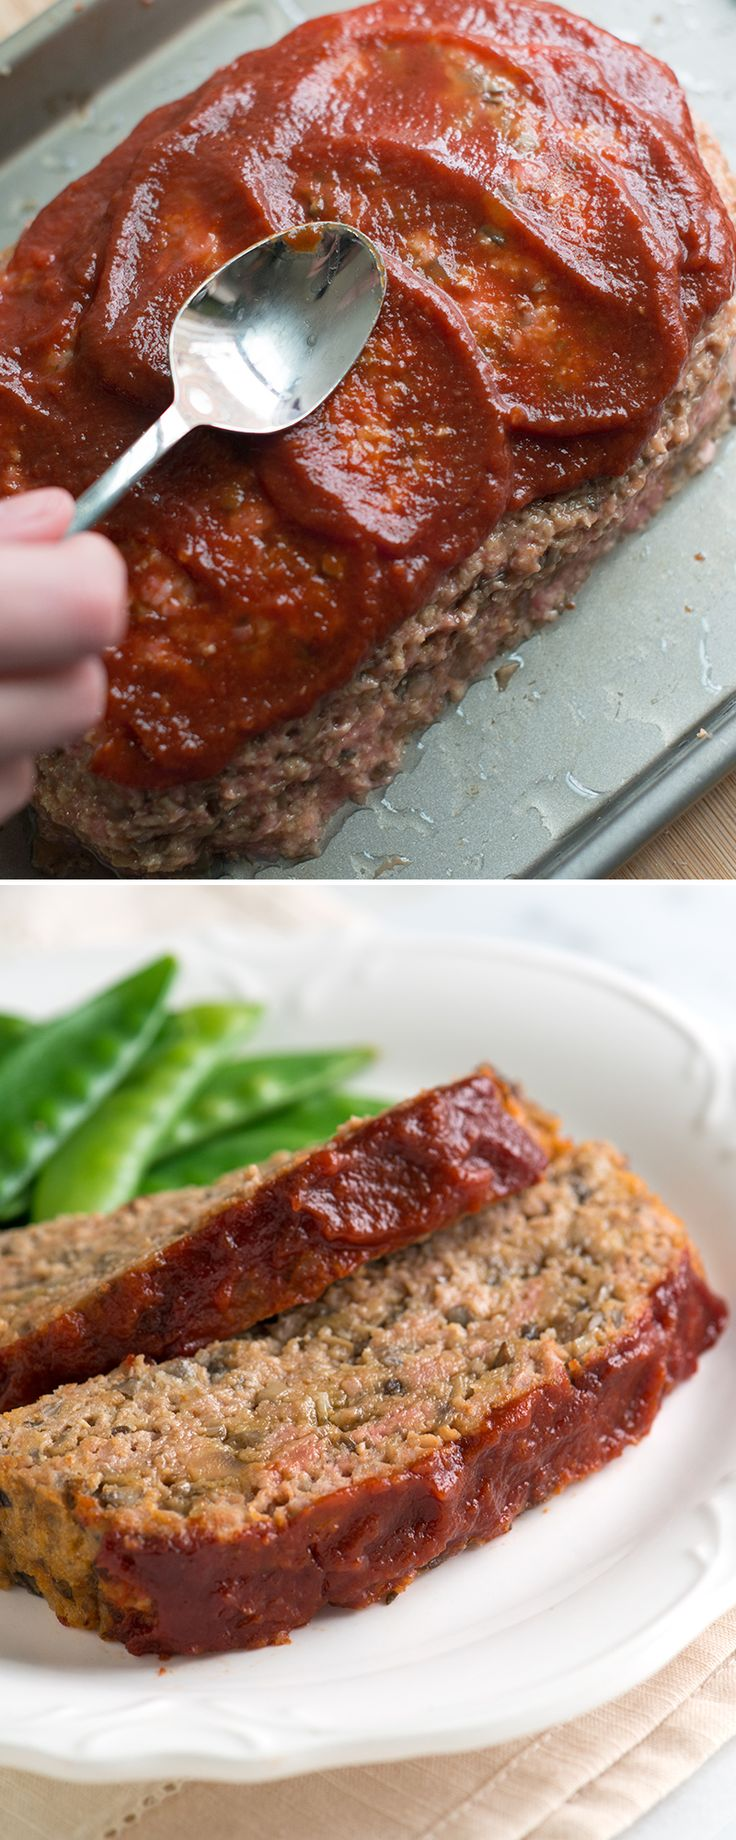 Until now, we've only been able to make somewhat dry meatloaf that's not really got anything going on with flavor. That's why we never really felt like making it. We just about gave up, but then we stumbled across a little secret. One that turned typical turkey meatloaf into something we crave and now make often. From inspiredtaste.net @inspiredtaste